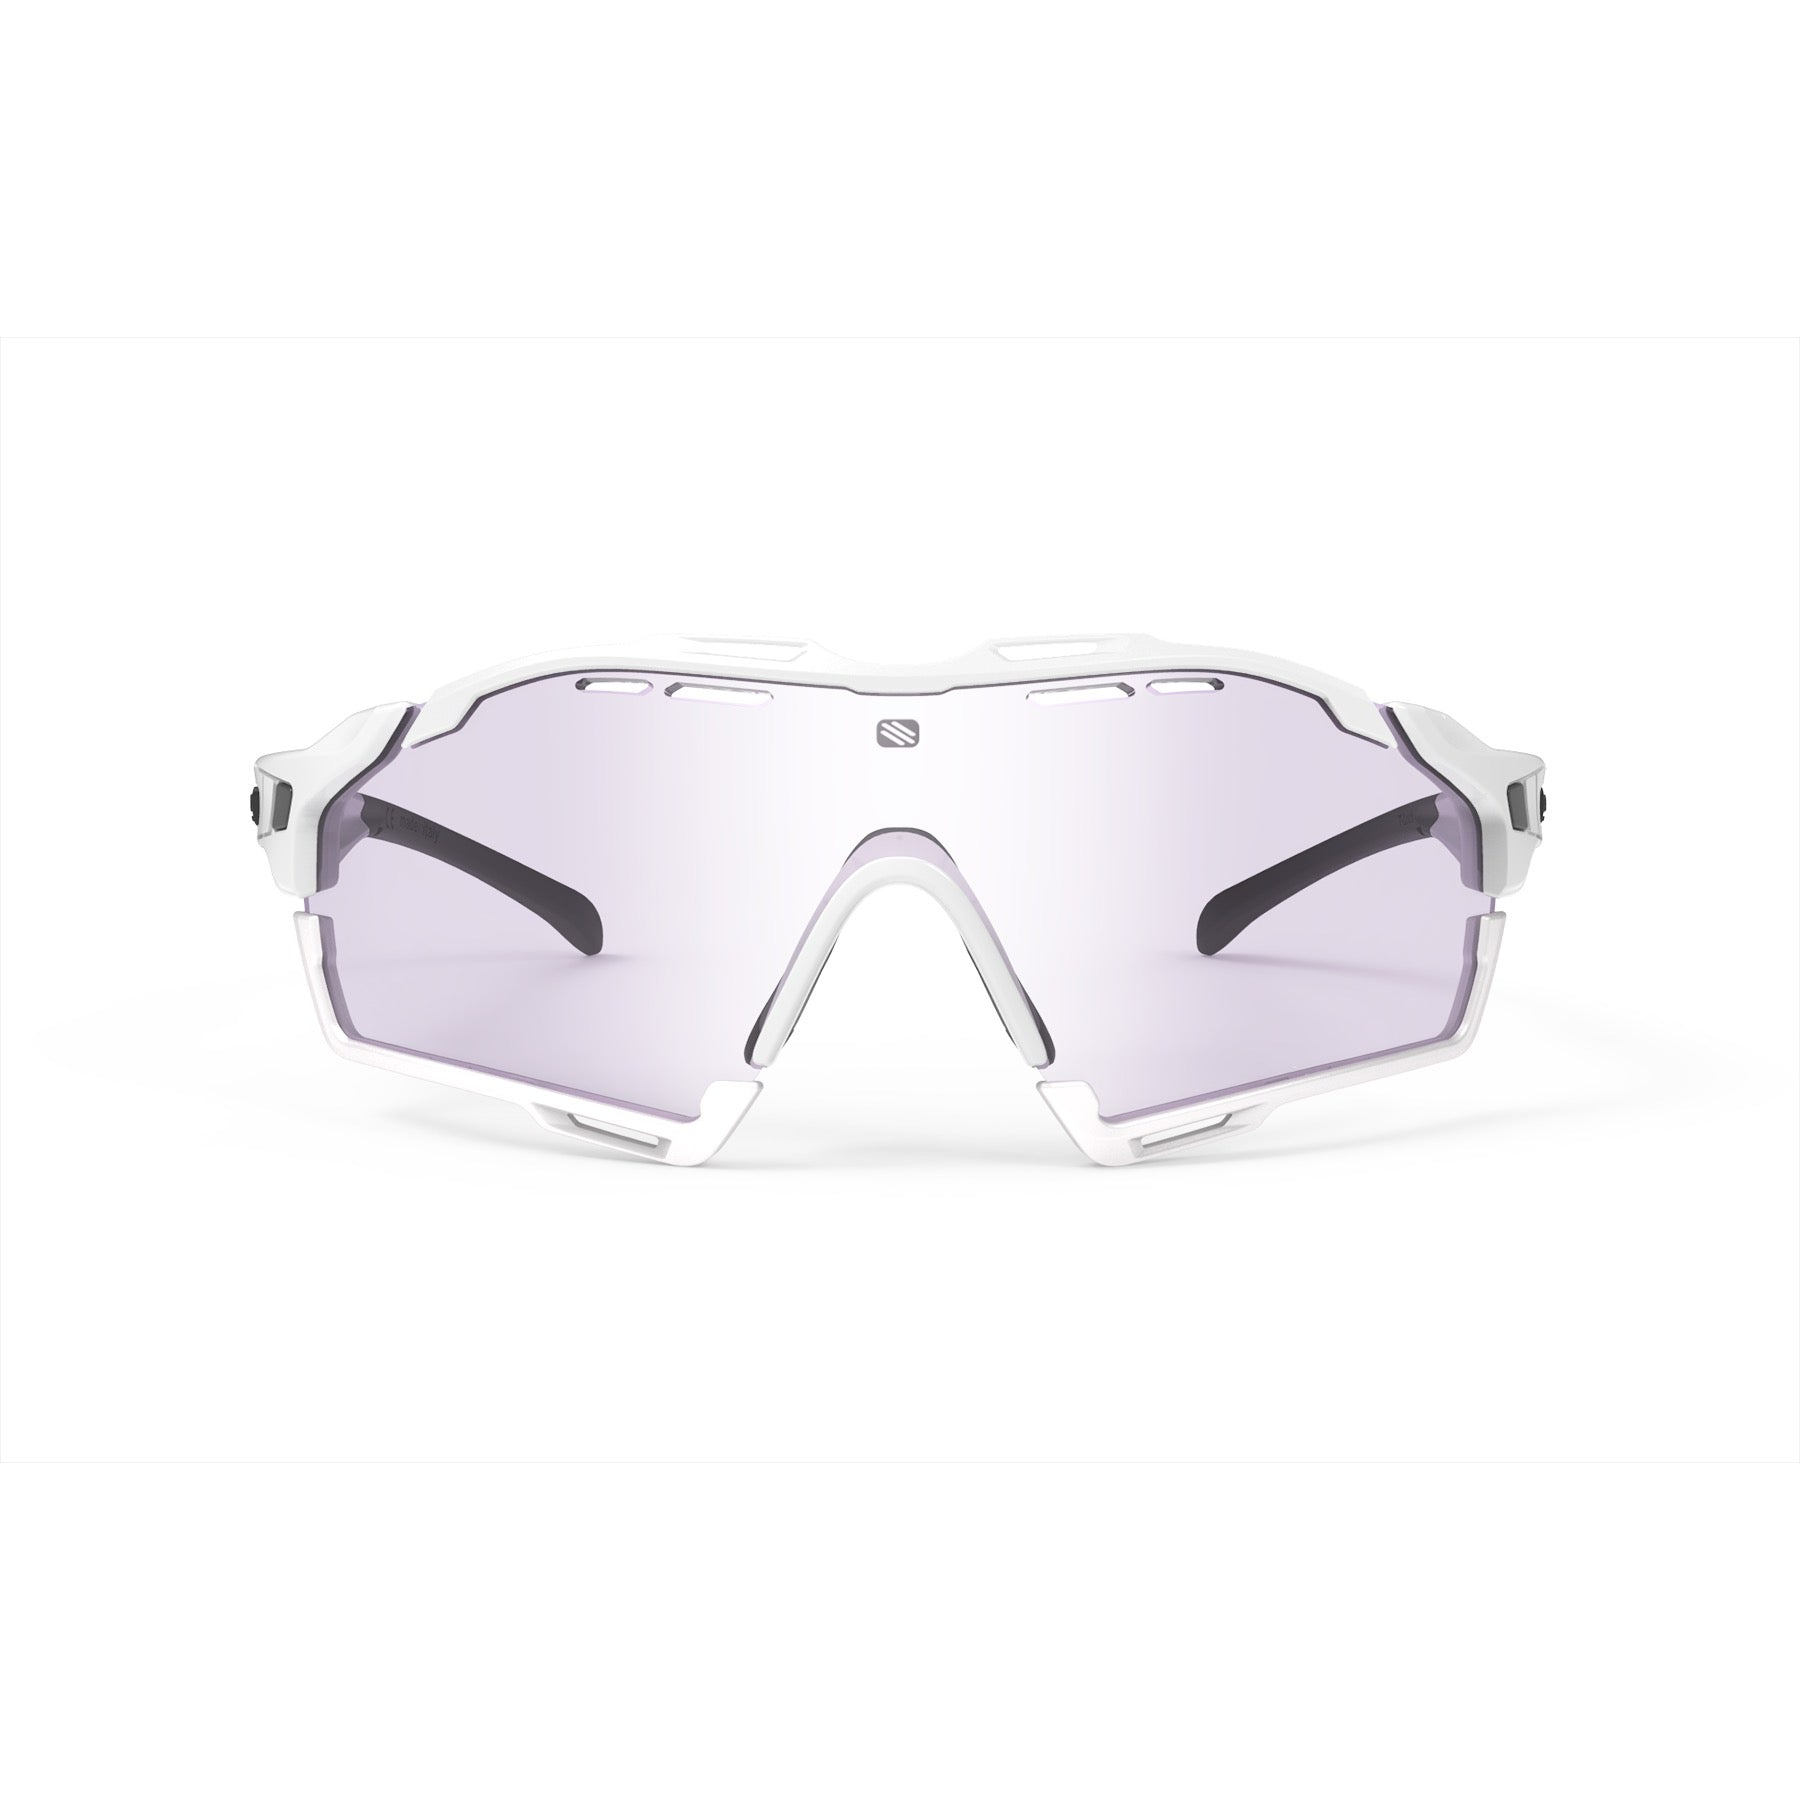 Rudy Project - Cutline - frame color: White Gloss - lens color: ImpactX-2 Photochromic Clear to Laser Purple - Bumper Color: White - photo angle: Front View Variant Hover Image